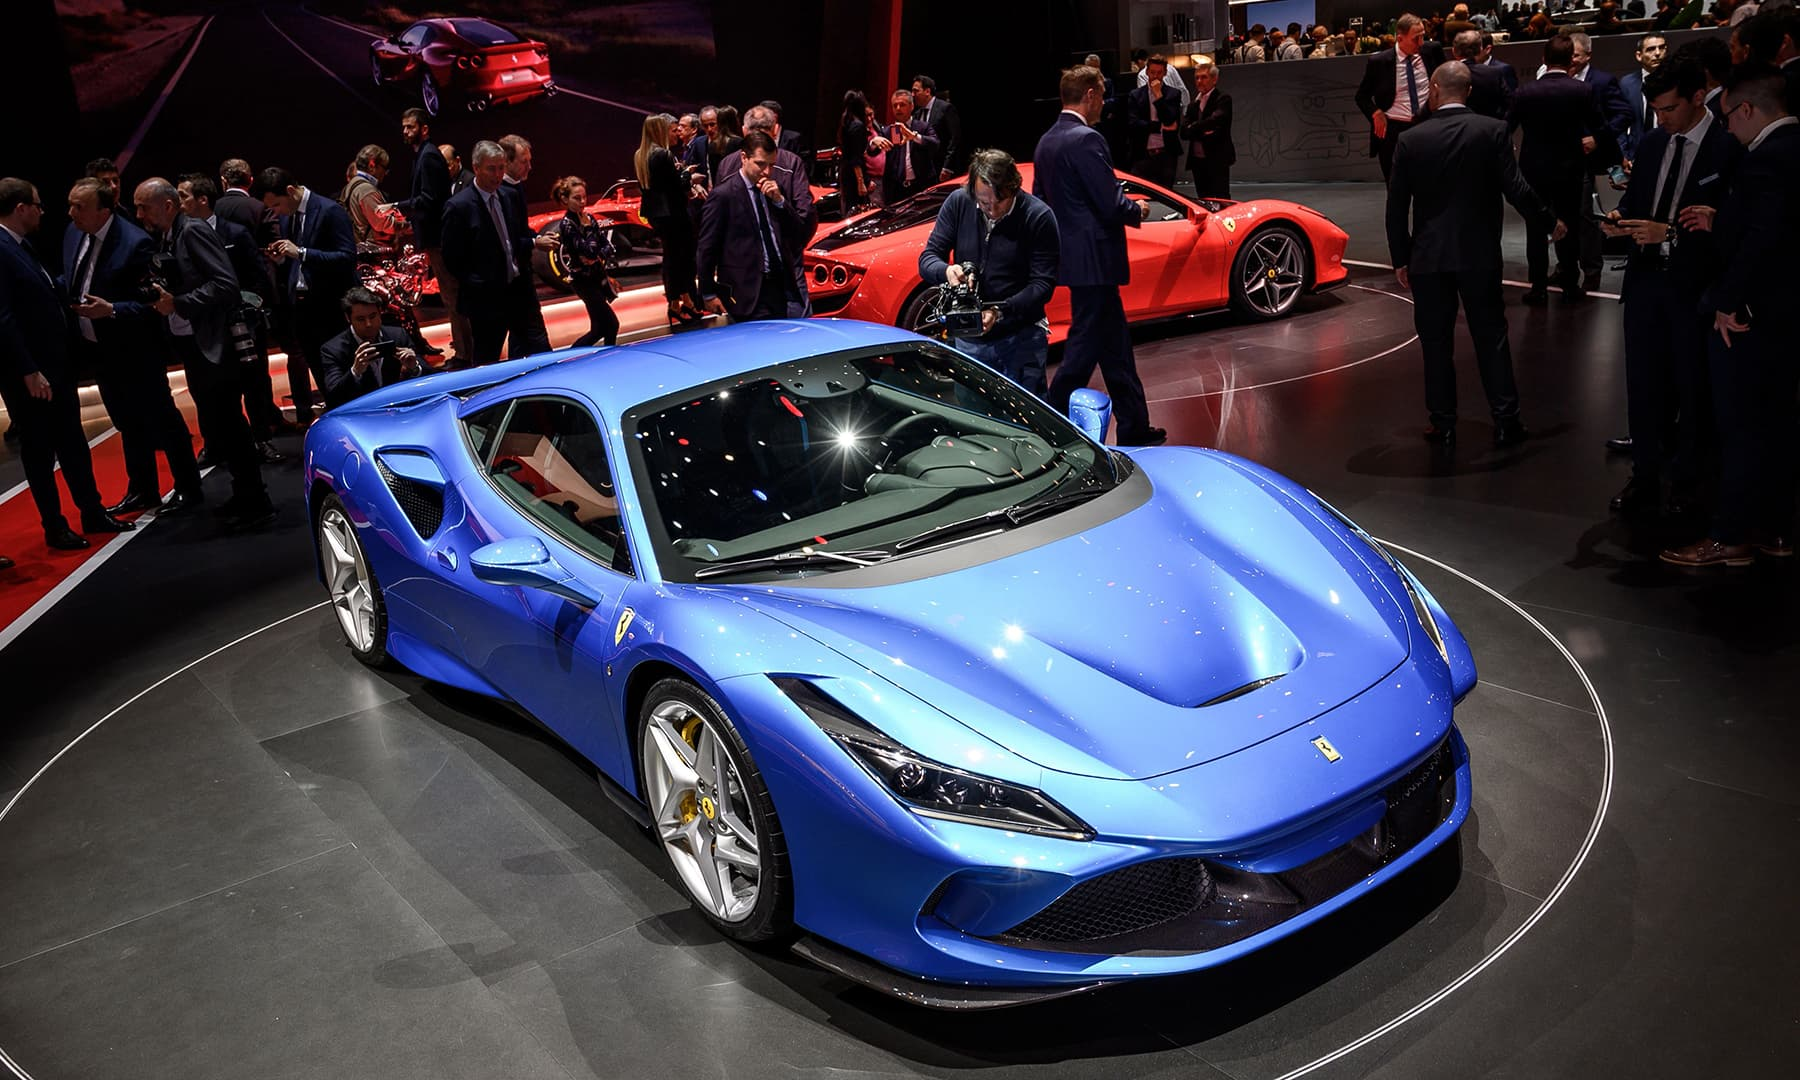 The new Ferrari F8 Tributo is displayed at the booth of the Italian carmaker on March 5 during a press day ahead of the Geneva International Motor Show. — AFP